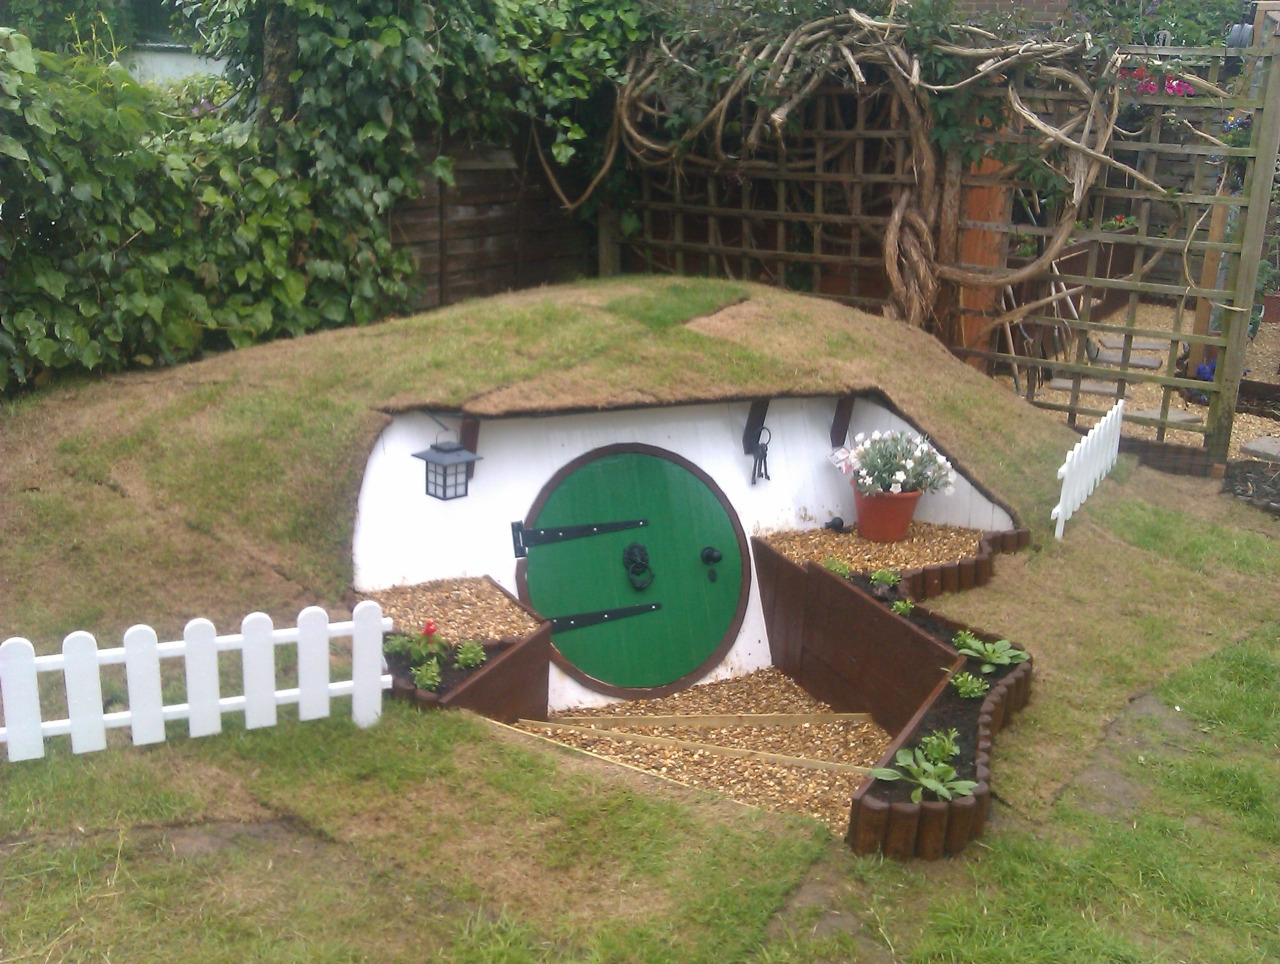 09-Ashley-Yeates-Architecture-with-the-Garden-Hobbit-Hole-www-designstack-co